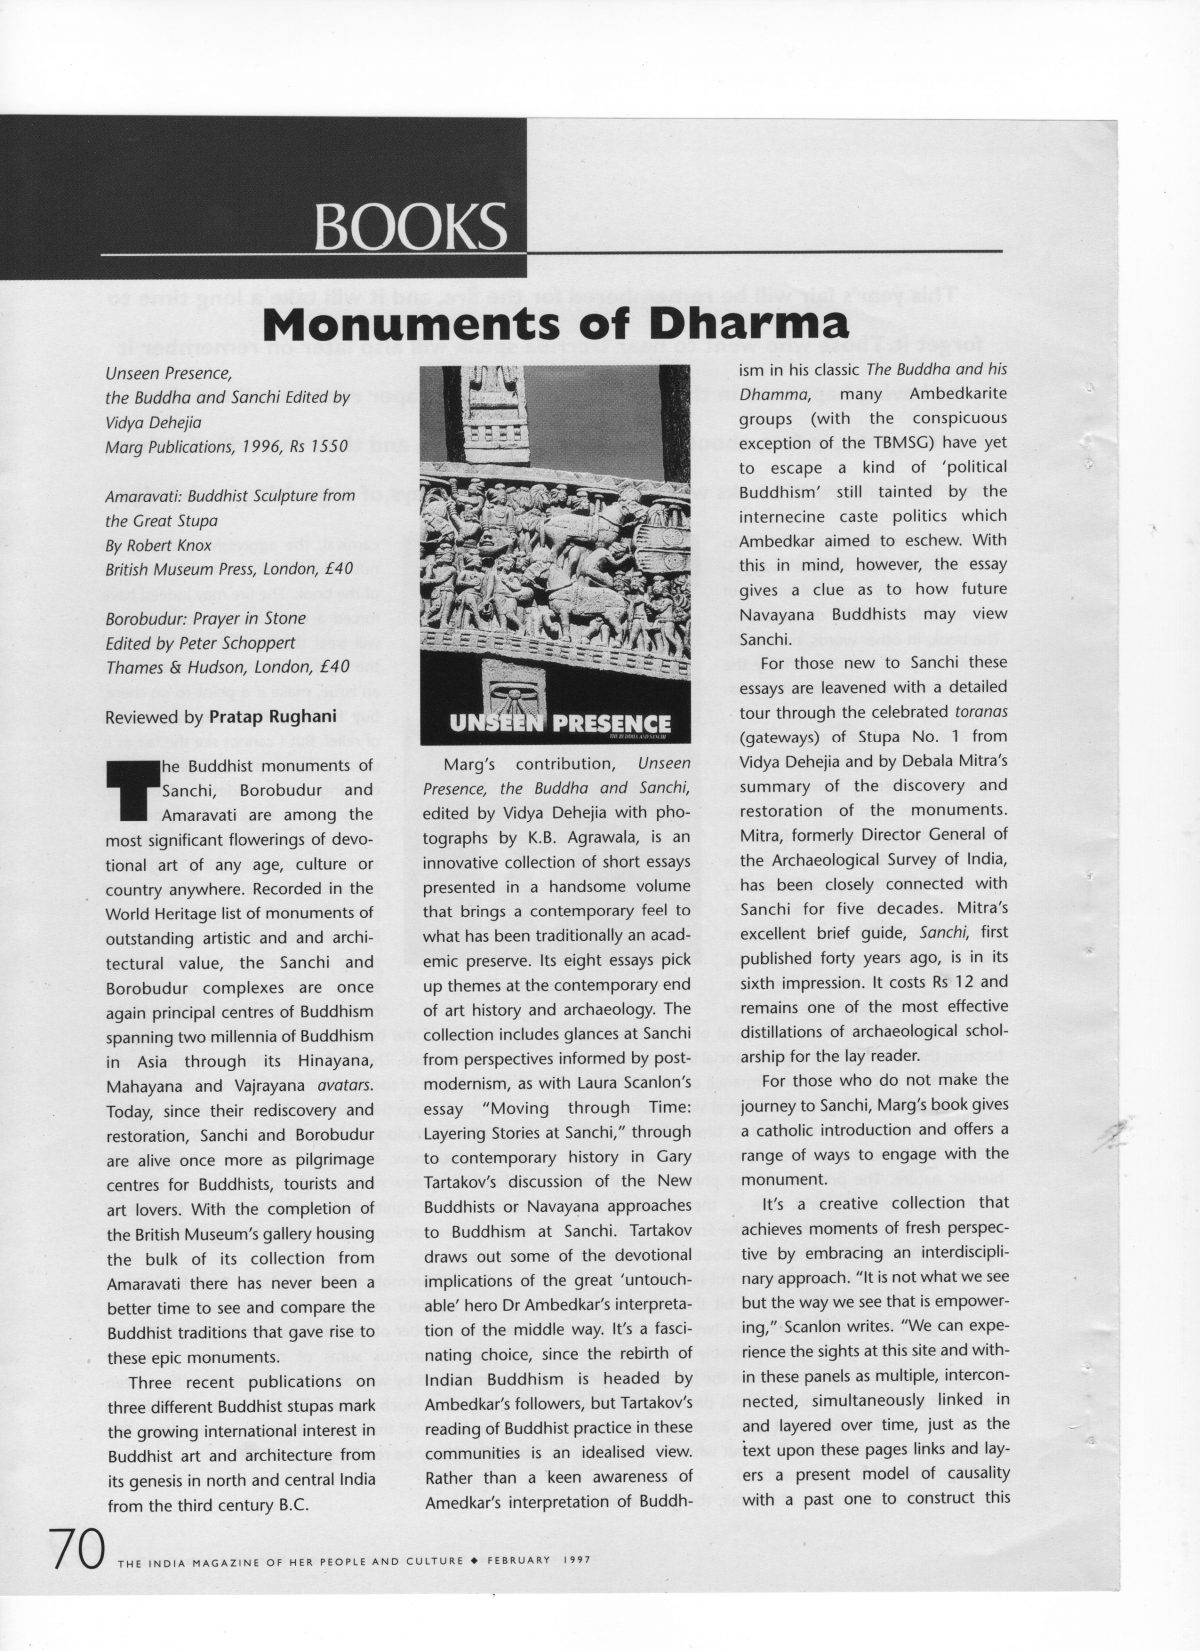 Monuments of Dharma